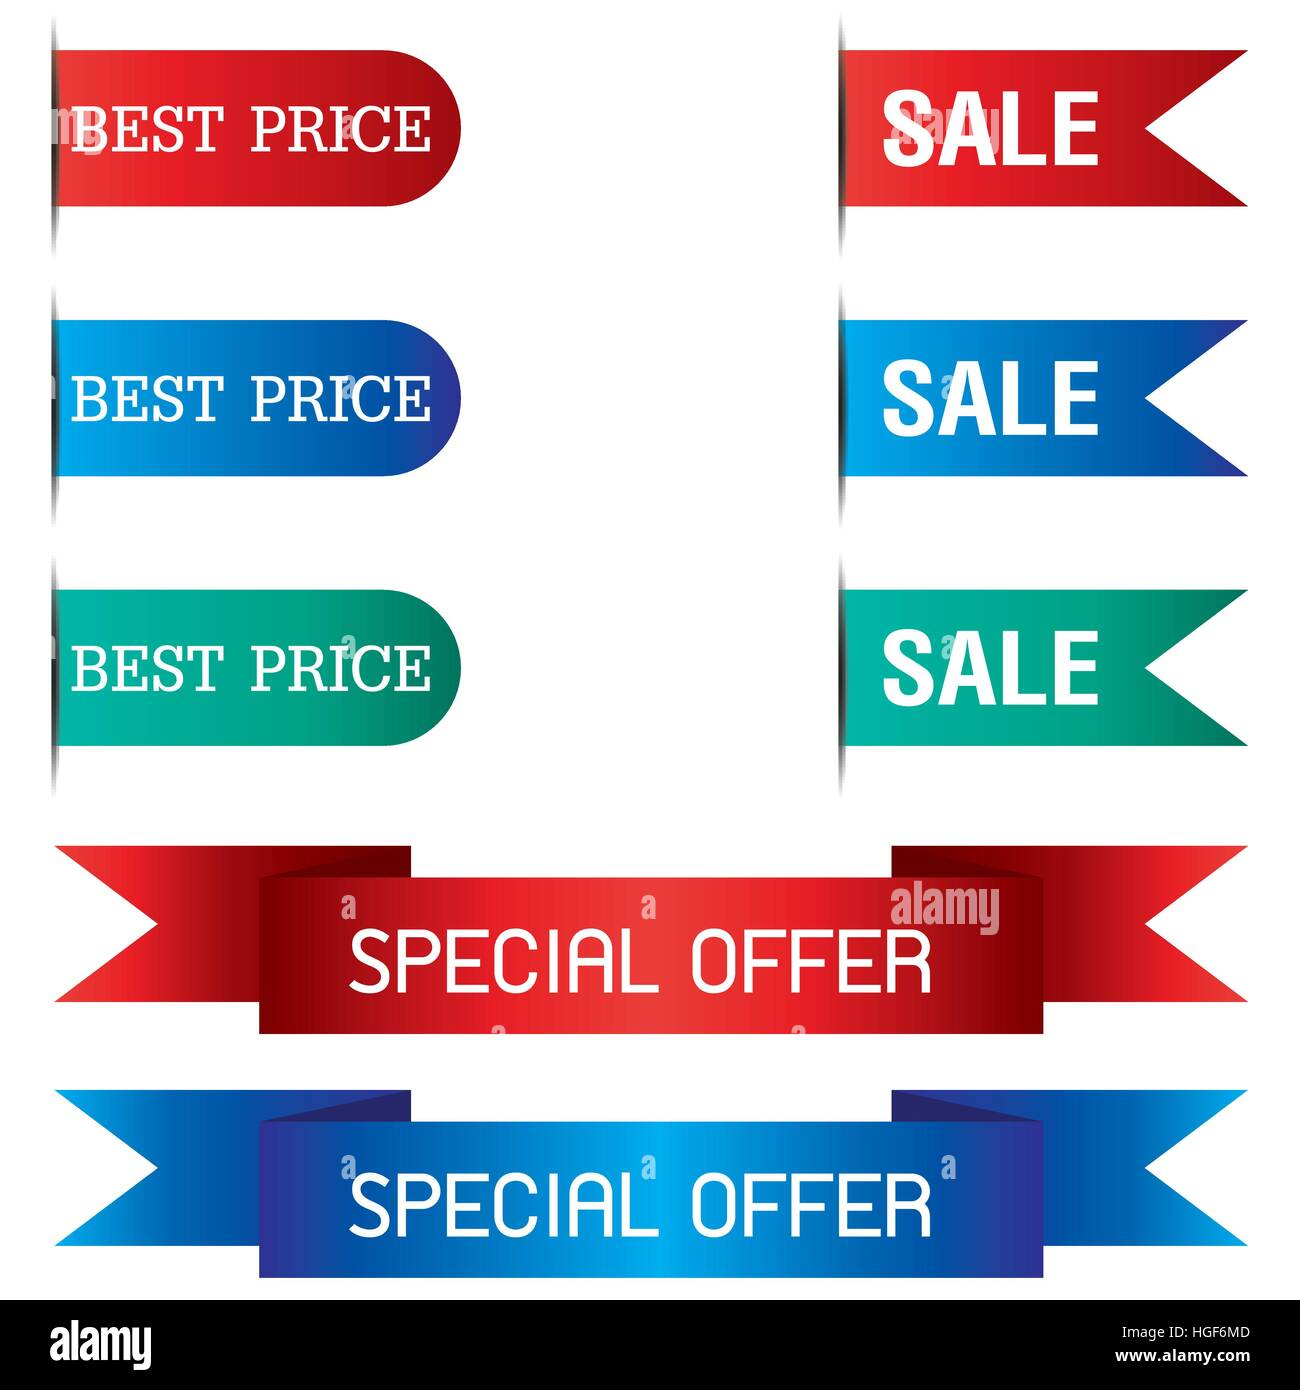 Price for a poster design - Stock Vector Discount Price Label Icon Illustration Sale Season Business Design Paper Poster Banner Advertising Promotion